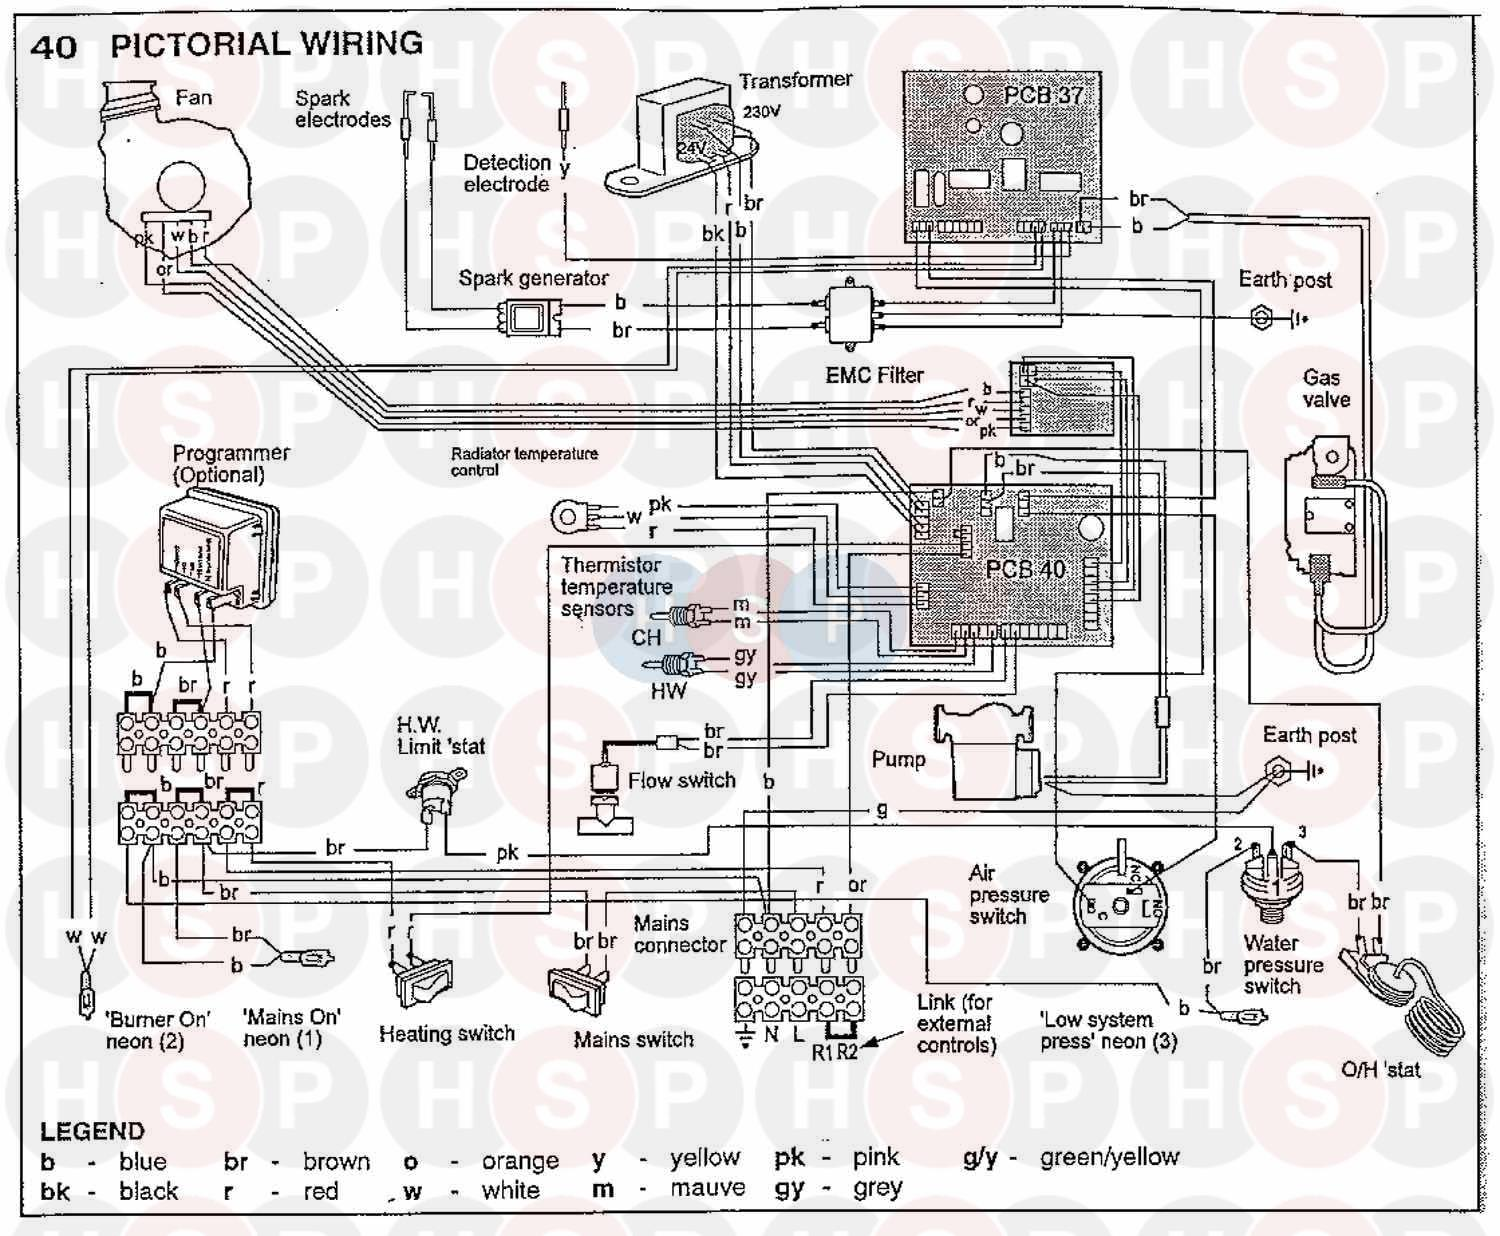 Ideal Response 100 Wiring Diagram 1 Heating Spare Parts Pictorial Click The To Open It On A New Page